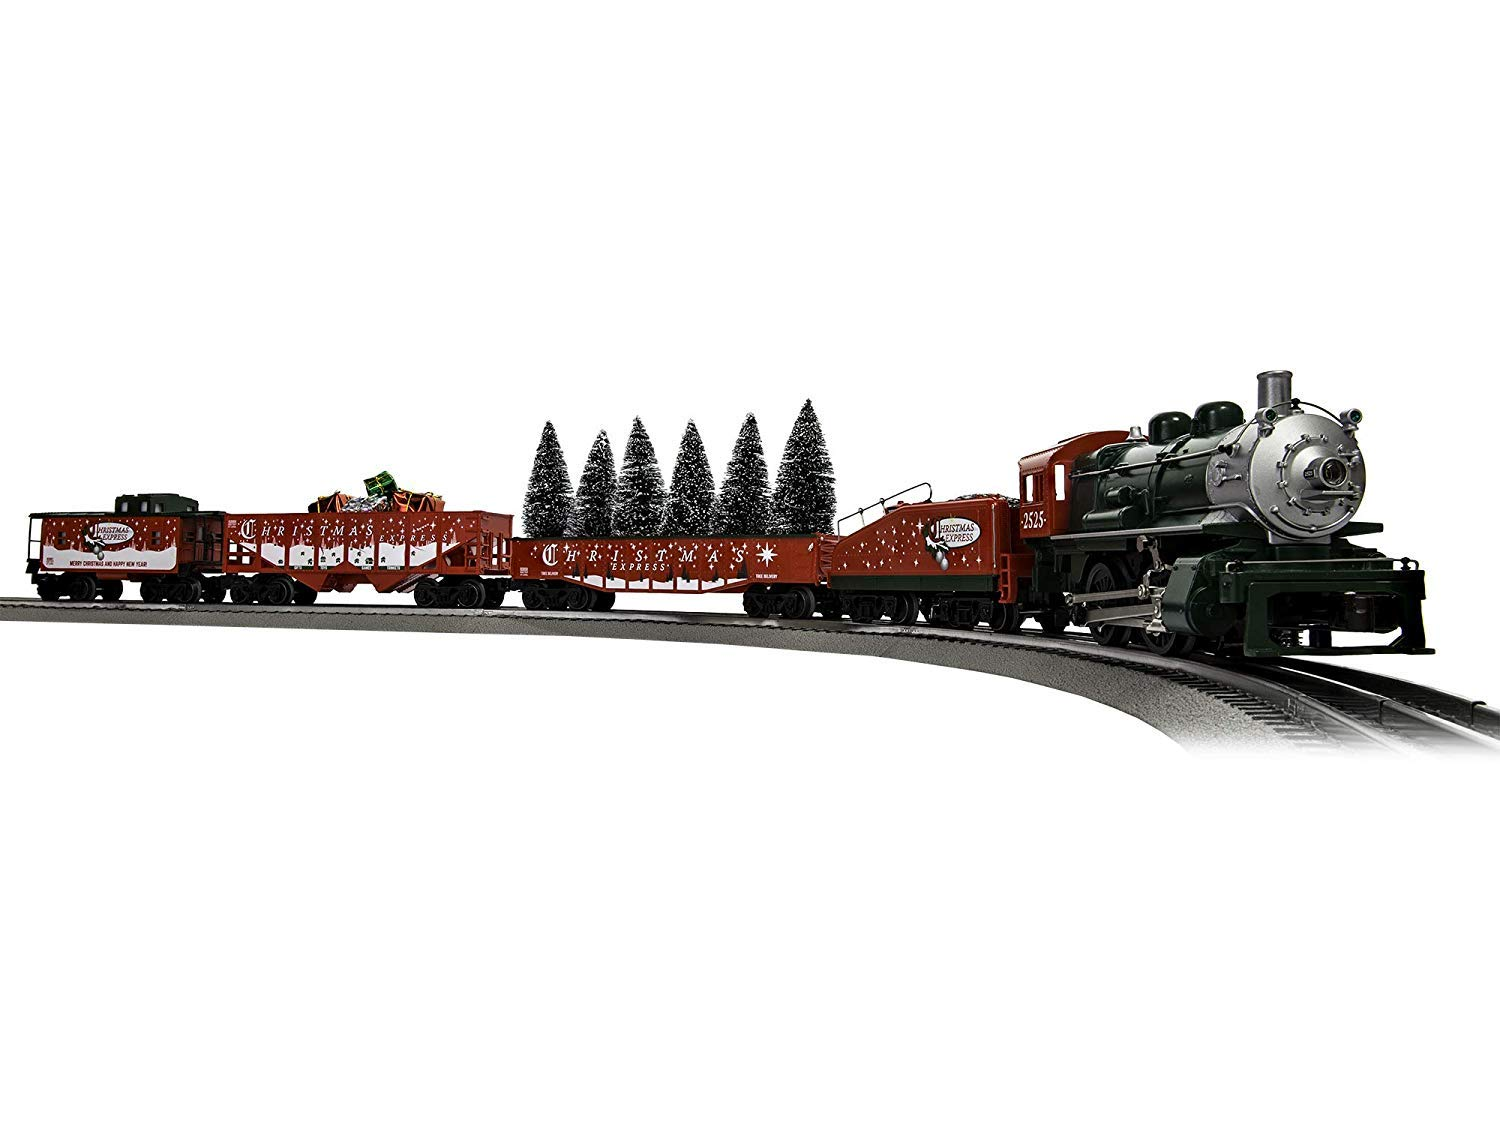 Lionel Thomas Kinkade Electric O Gauge Model Train Set w// Remote and Bluetooth Capability